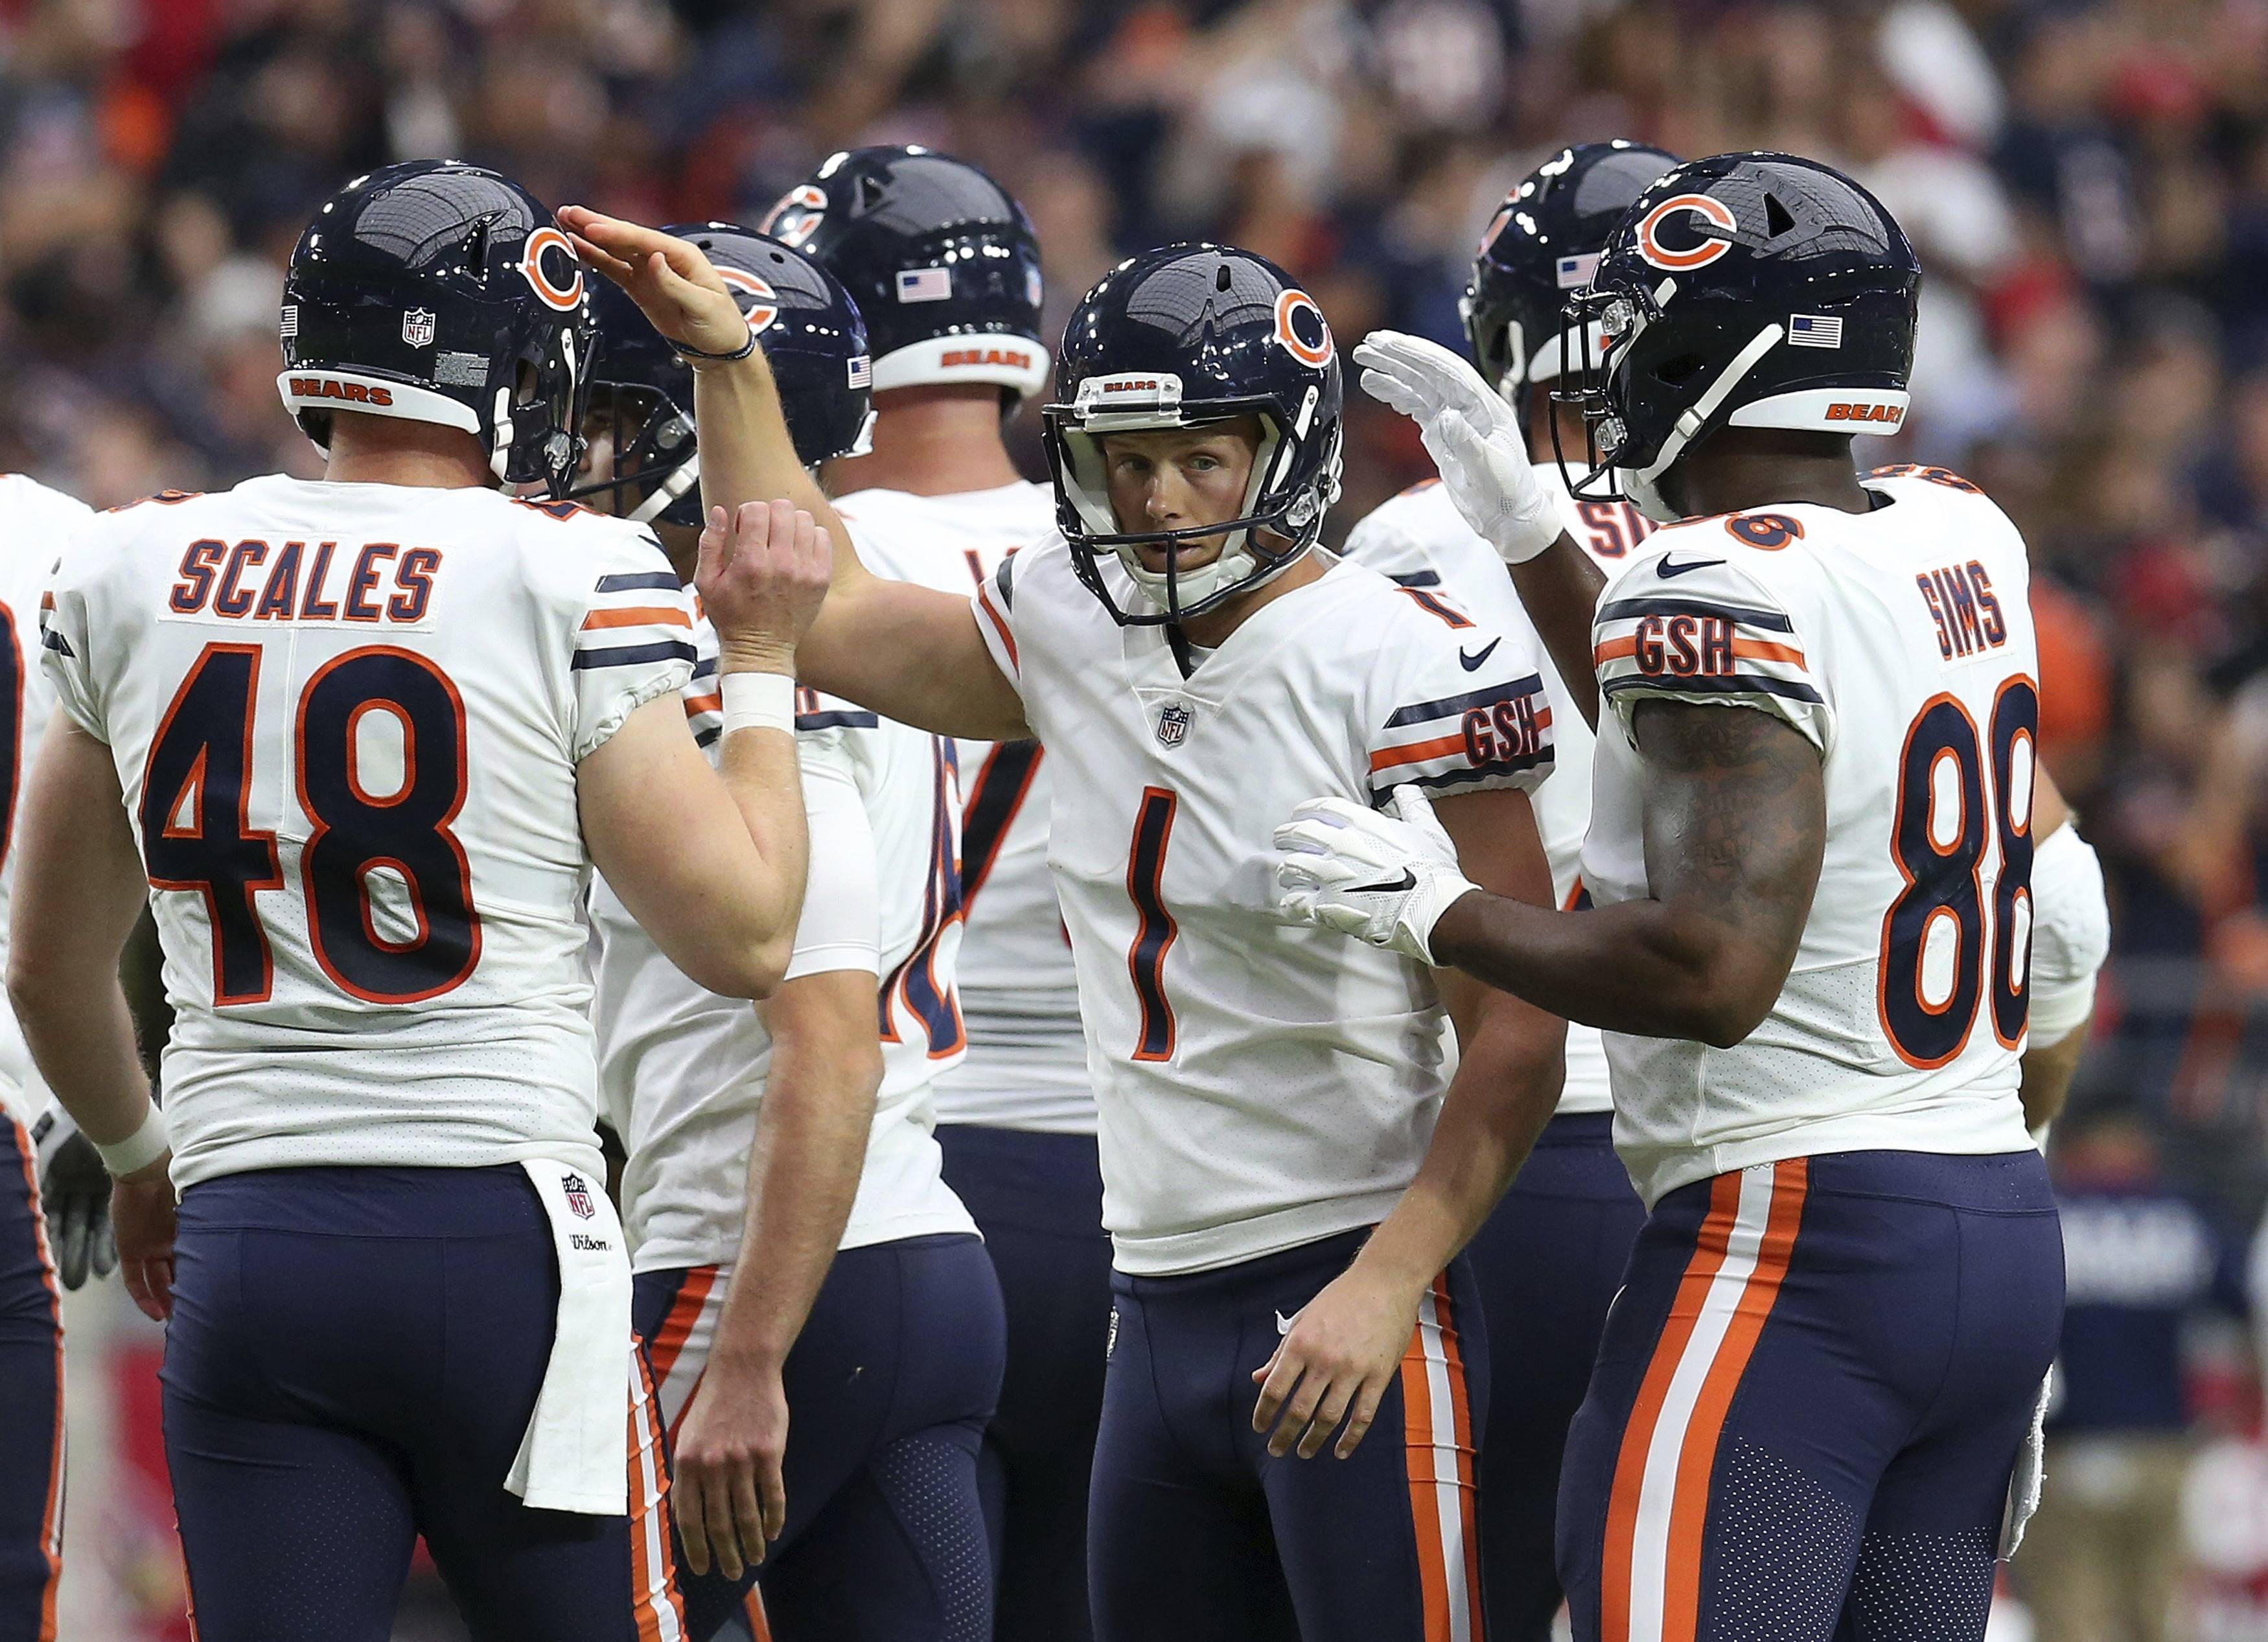 Chicago Bears kicker Cody Parkey (1) celebrates his field goal against the Arizona Cardinals with Patrick Scales (48) and Dion Sims (88) during the second half of an NFL football game, Sunday, Sept. 23, 2018, in Glendale, Ariz.